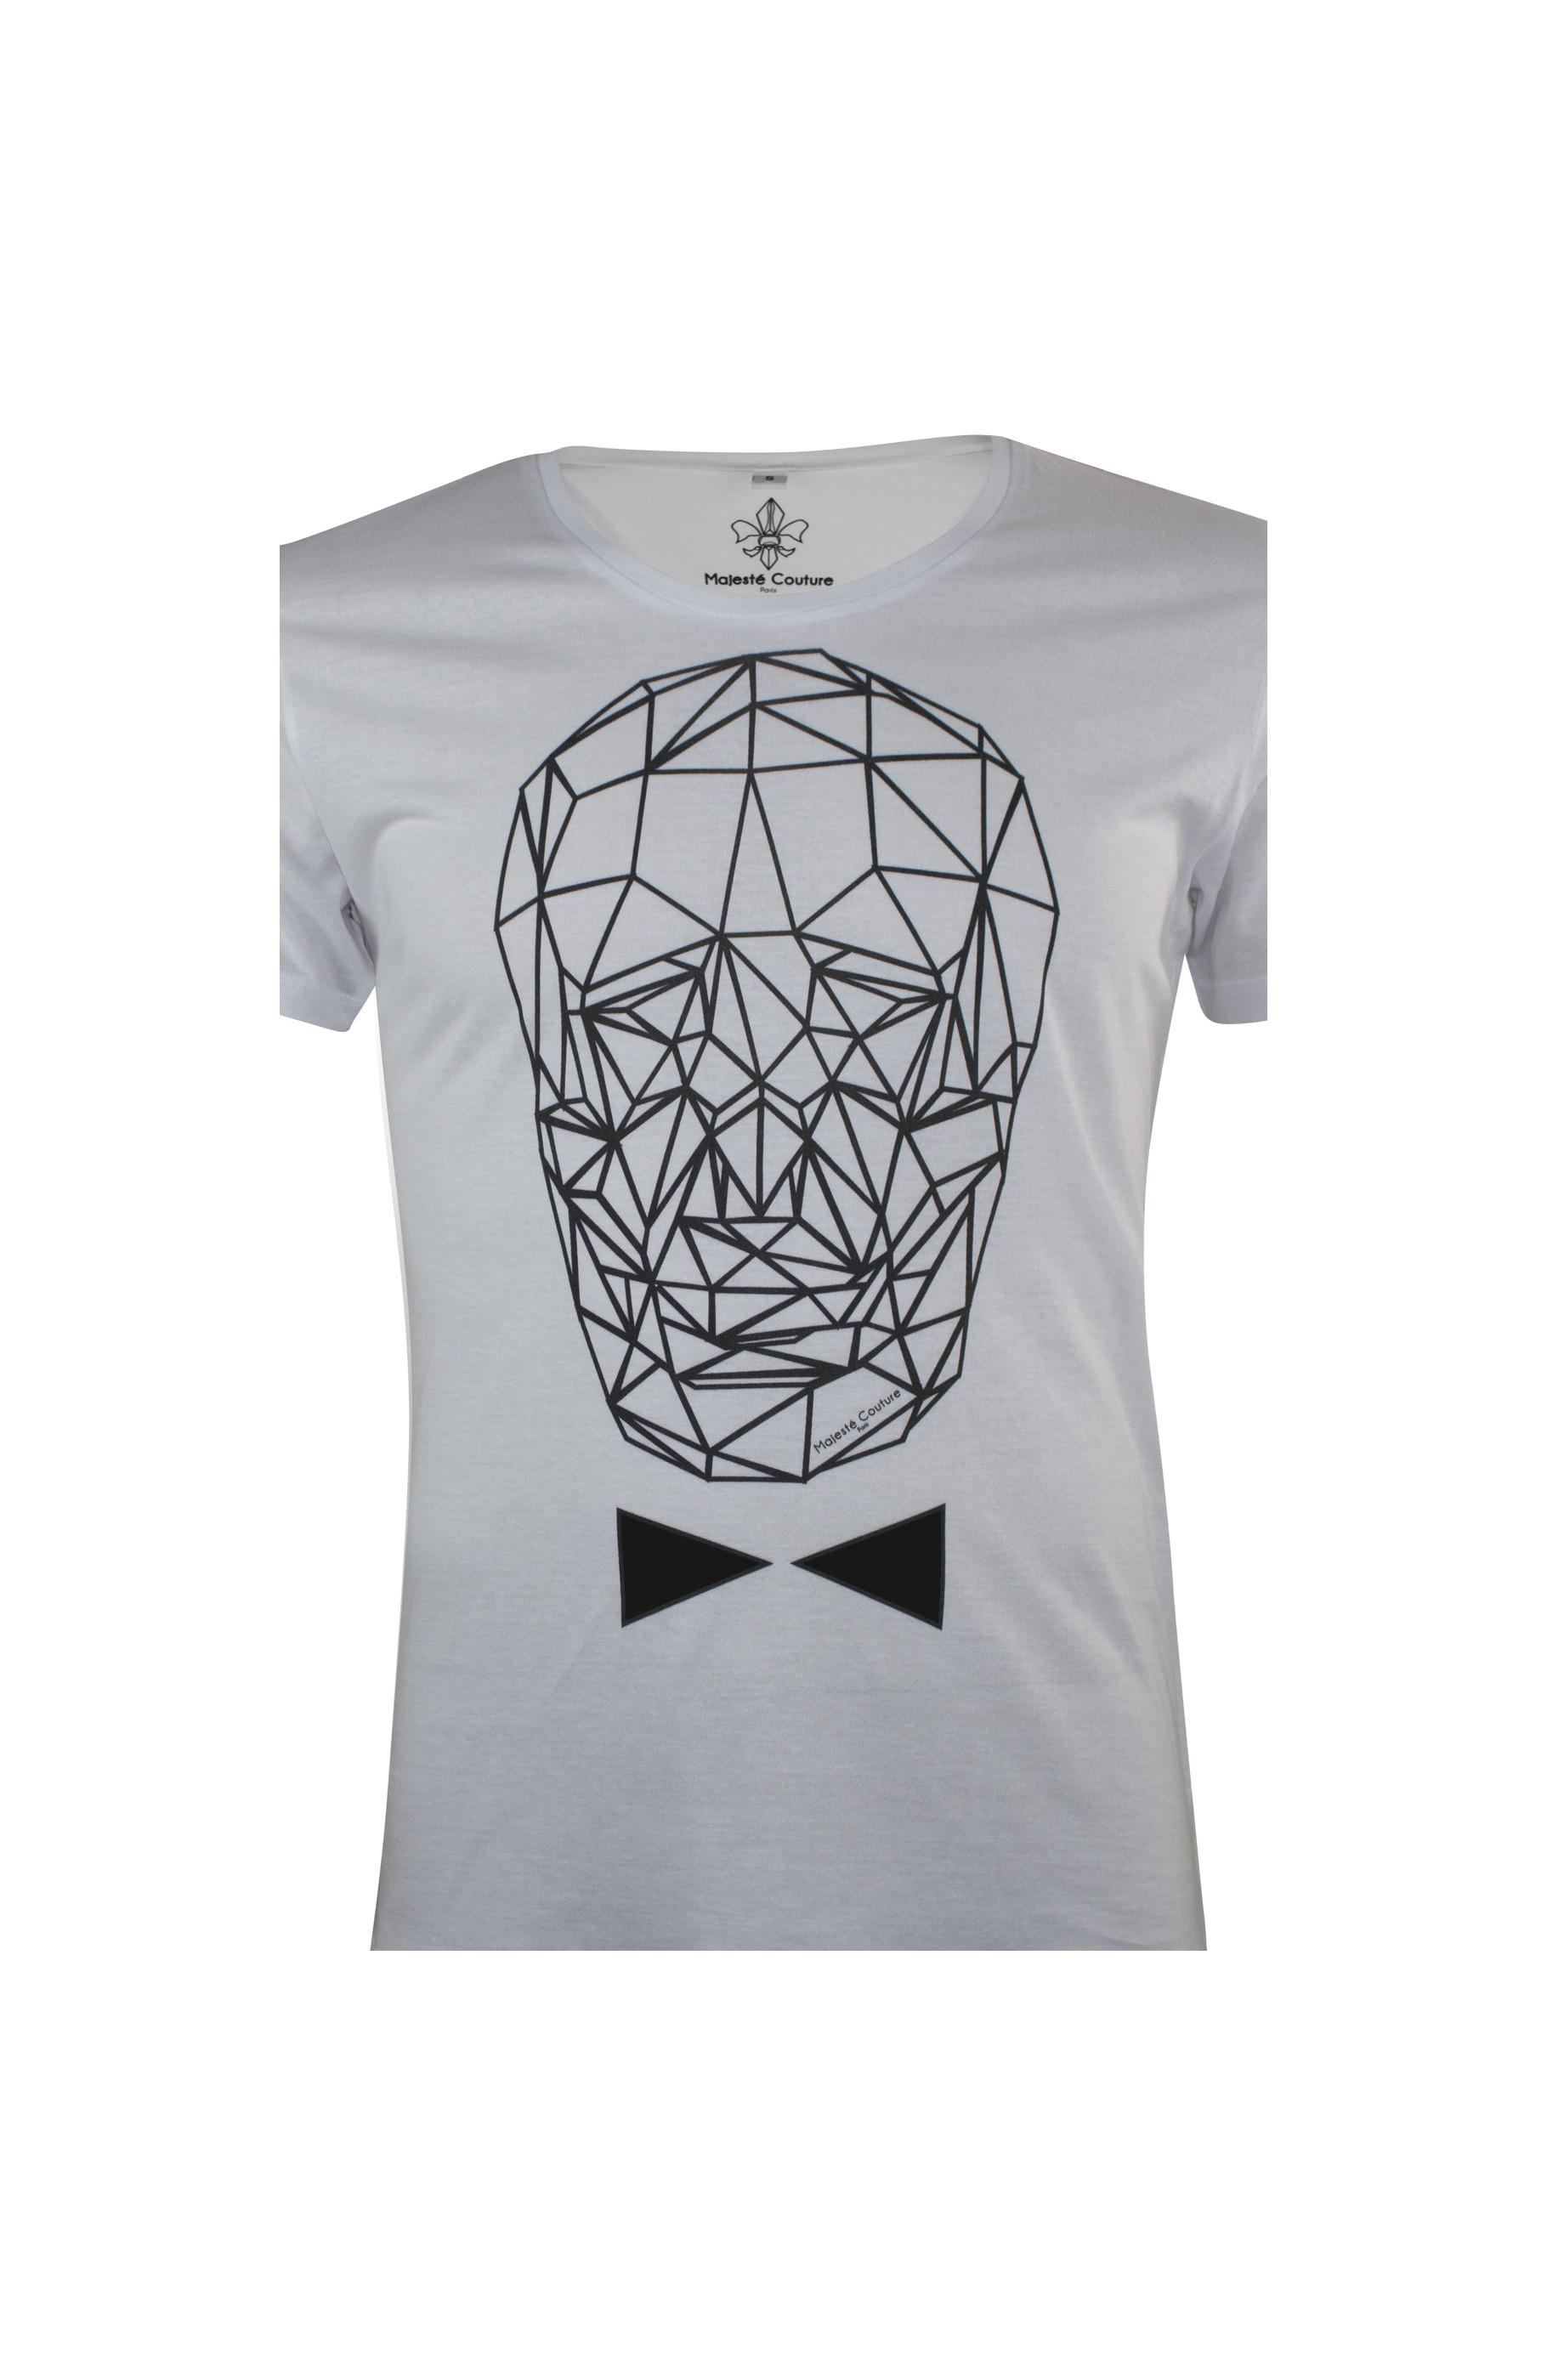 Majesté Couture Paris: WHITE & BLACK GRAPHIC_TDM T-SHIRT | Clothing,Clothing > T-Shirts -  Hiphunters Shop